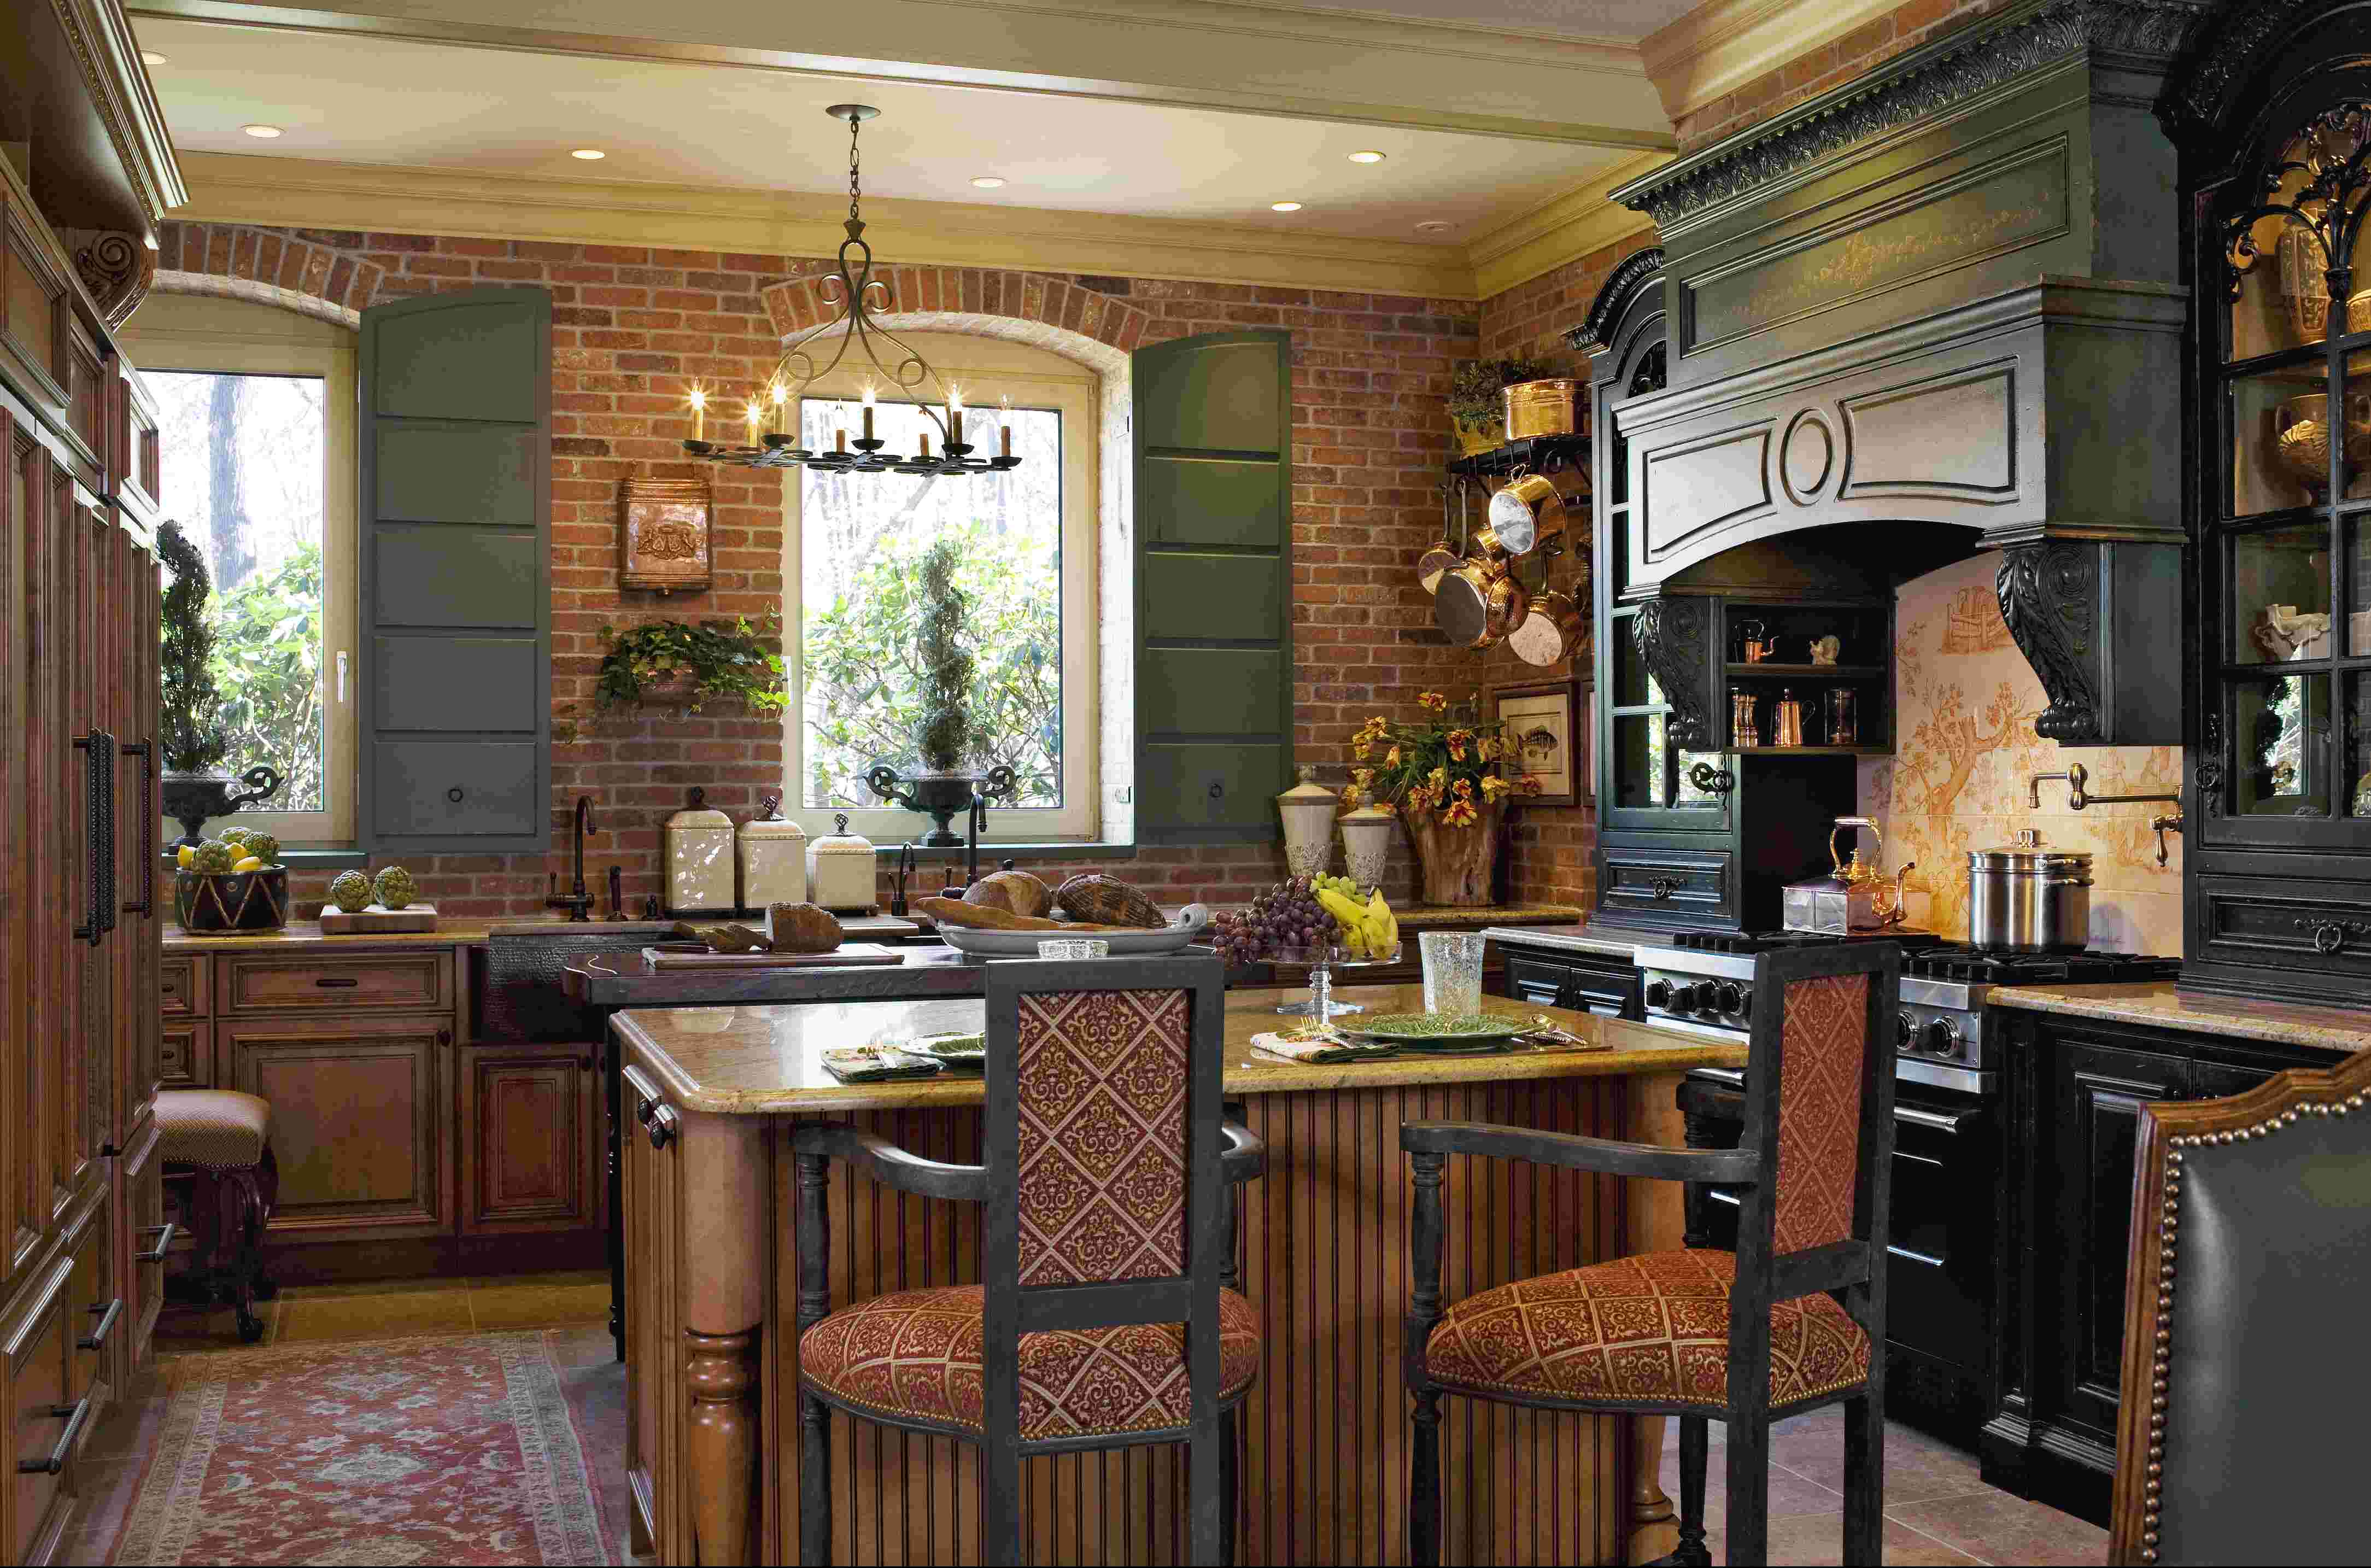 Authentically Styled French Country Kitchen With Exposed Brick Walls,  Shutters, And Custom Cabinetry And Millwork Reminiscent Of Antique  Furnishings And ...